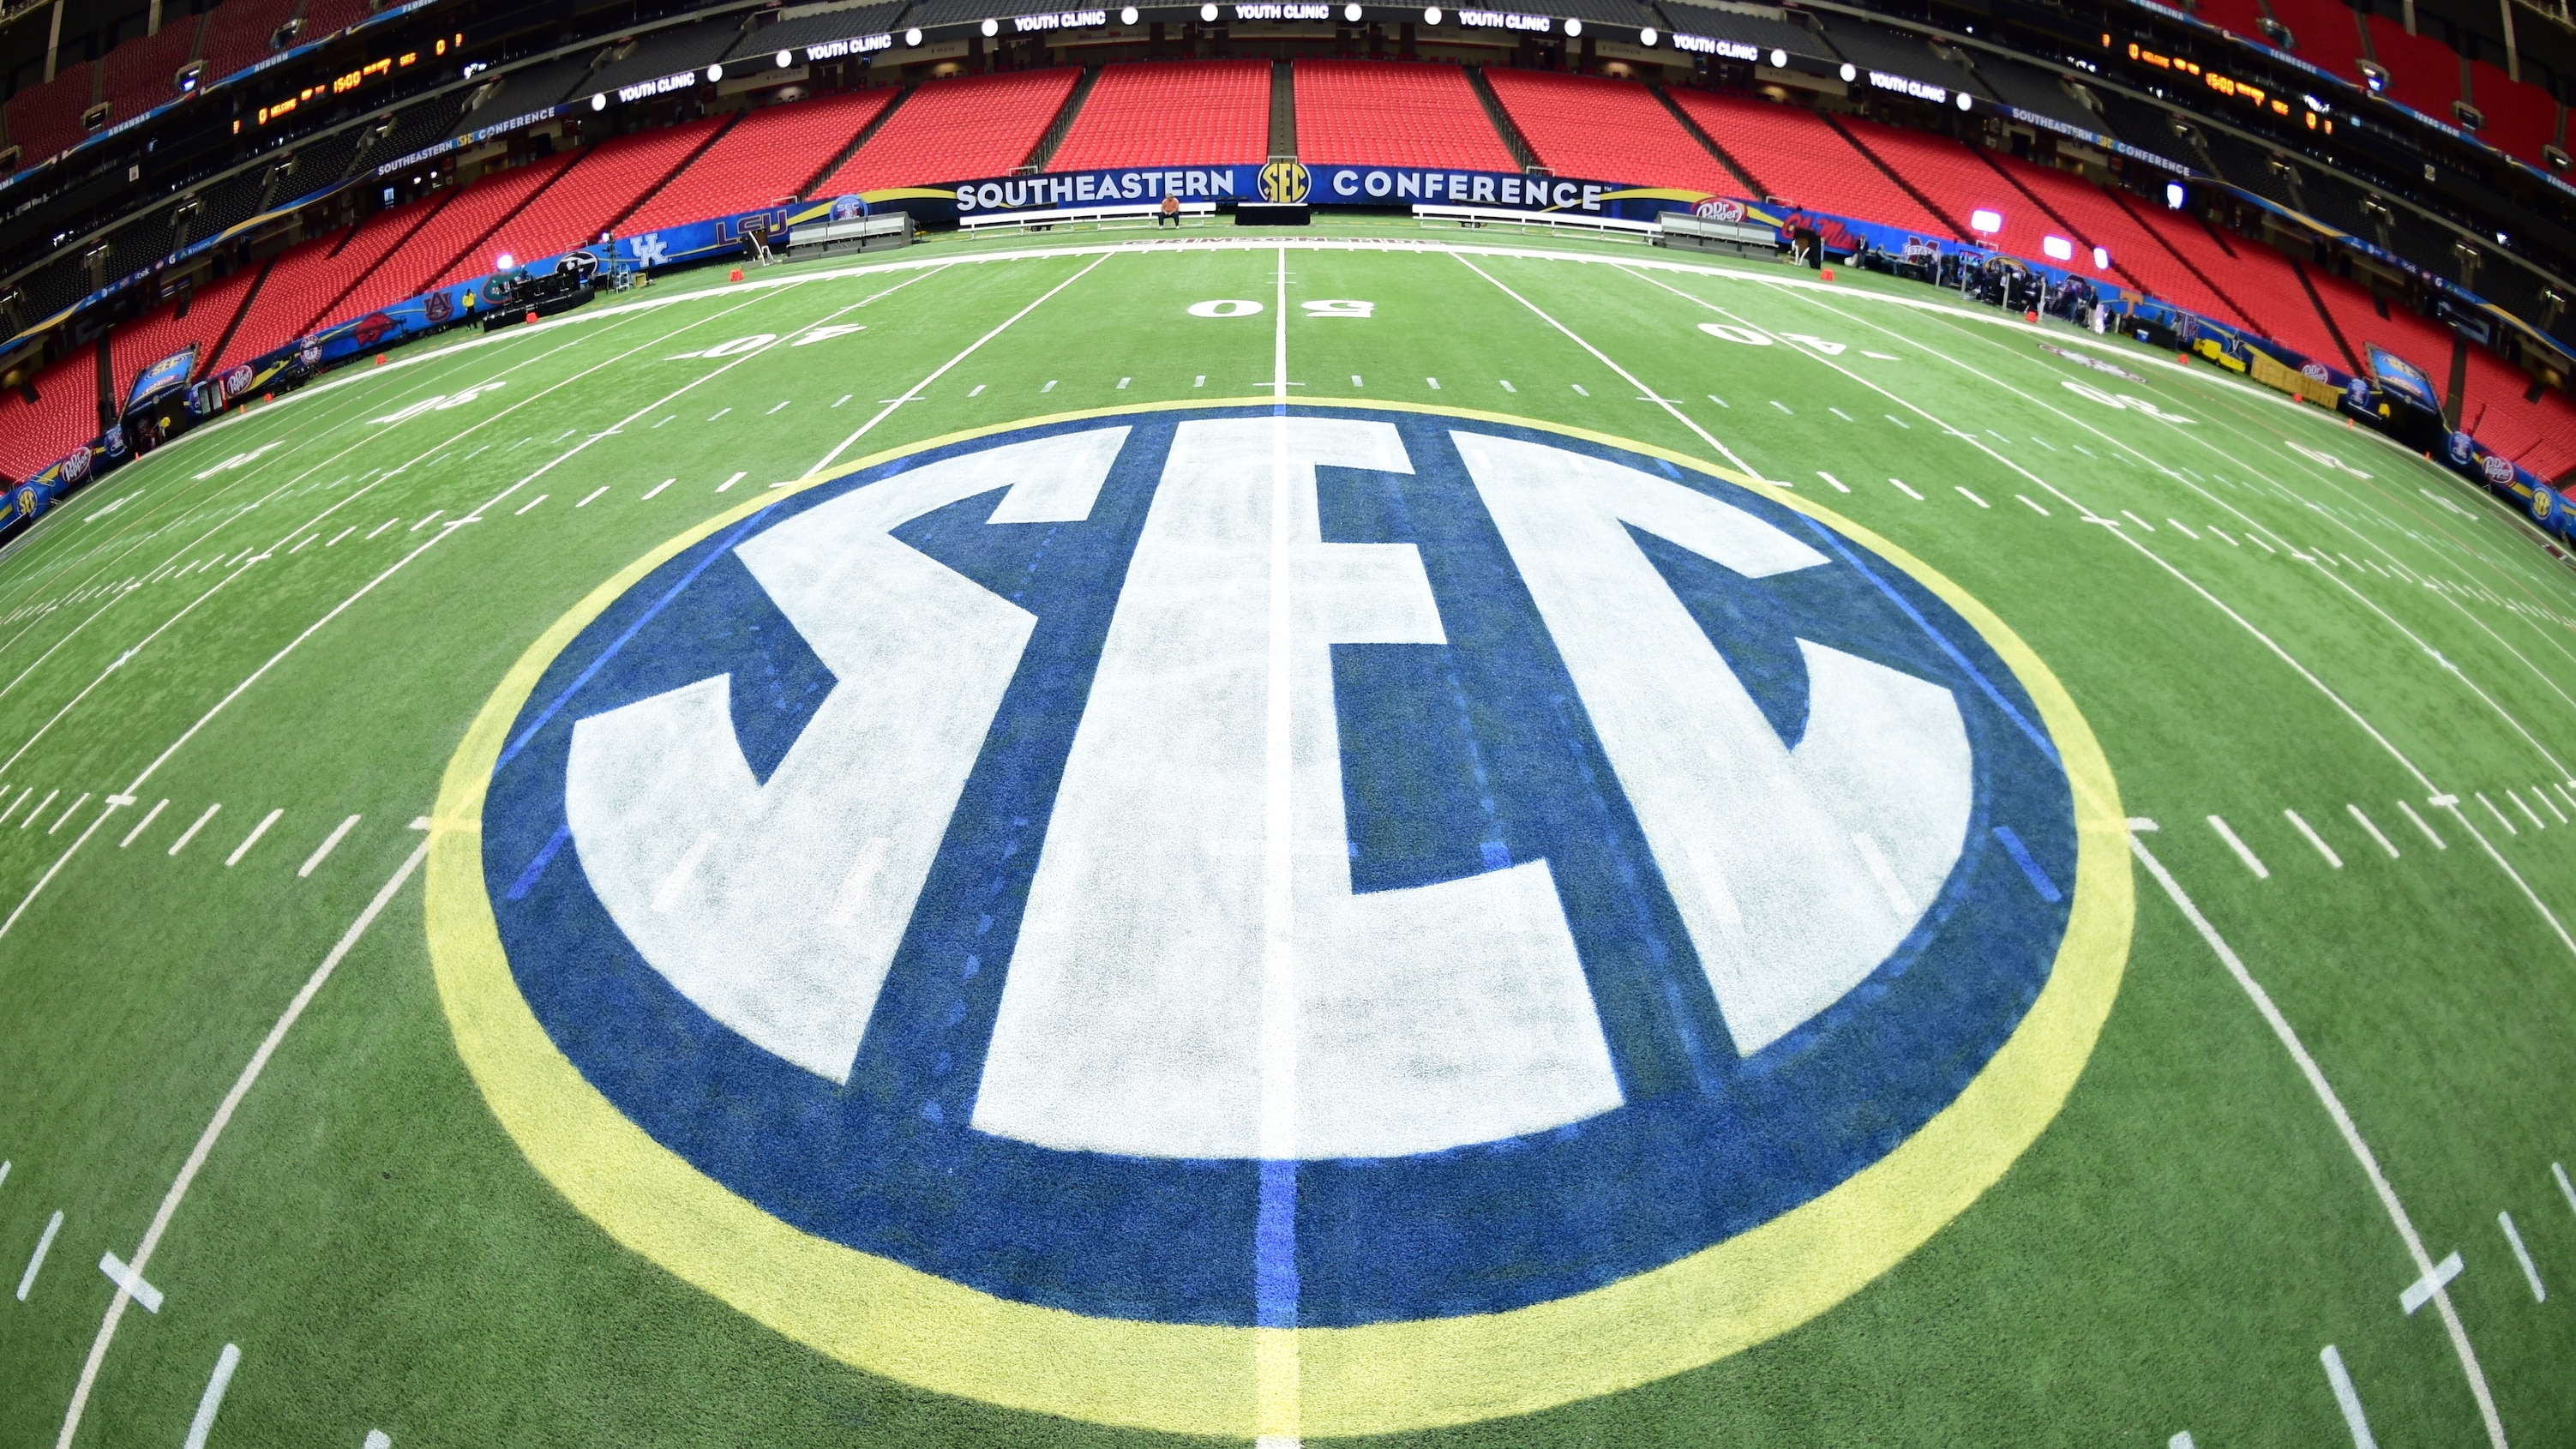 Atlanta, GA - December 4, 2015 - Georgia Dome: The field prior to the 2015 SEC Championship game (Photo by Phil Ellsworth / ESPN Images)